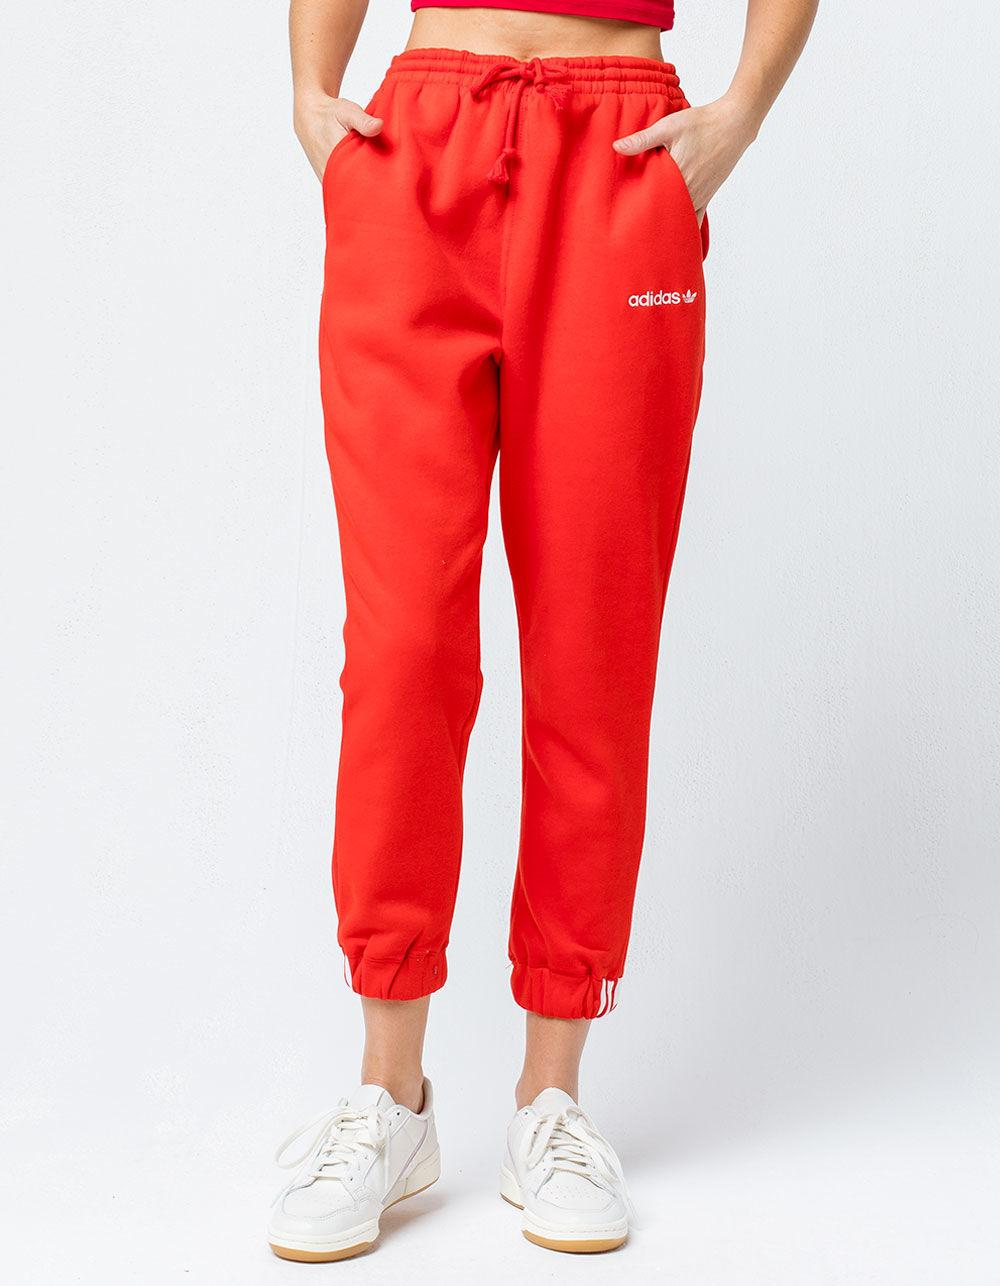 new style 5a129 cbb3a adidas Coeeze Red Womens Jogger Pants in Red - Lyst